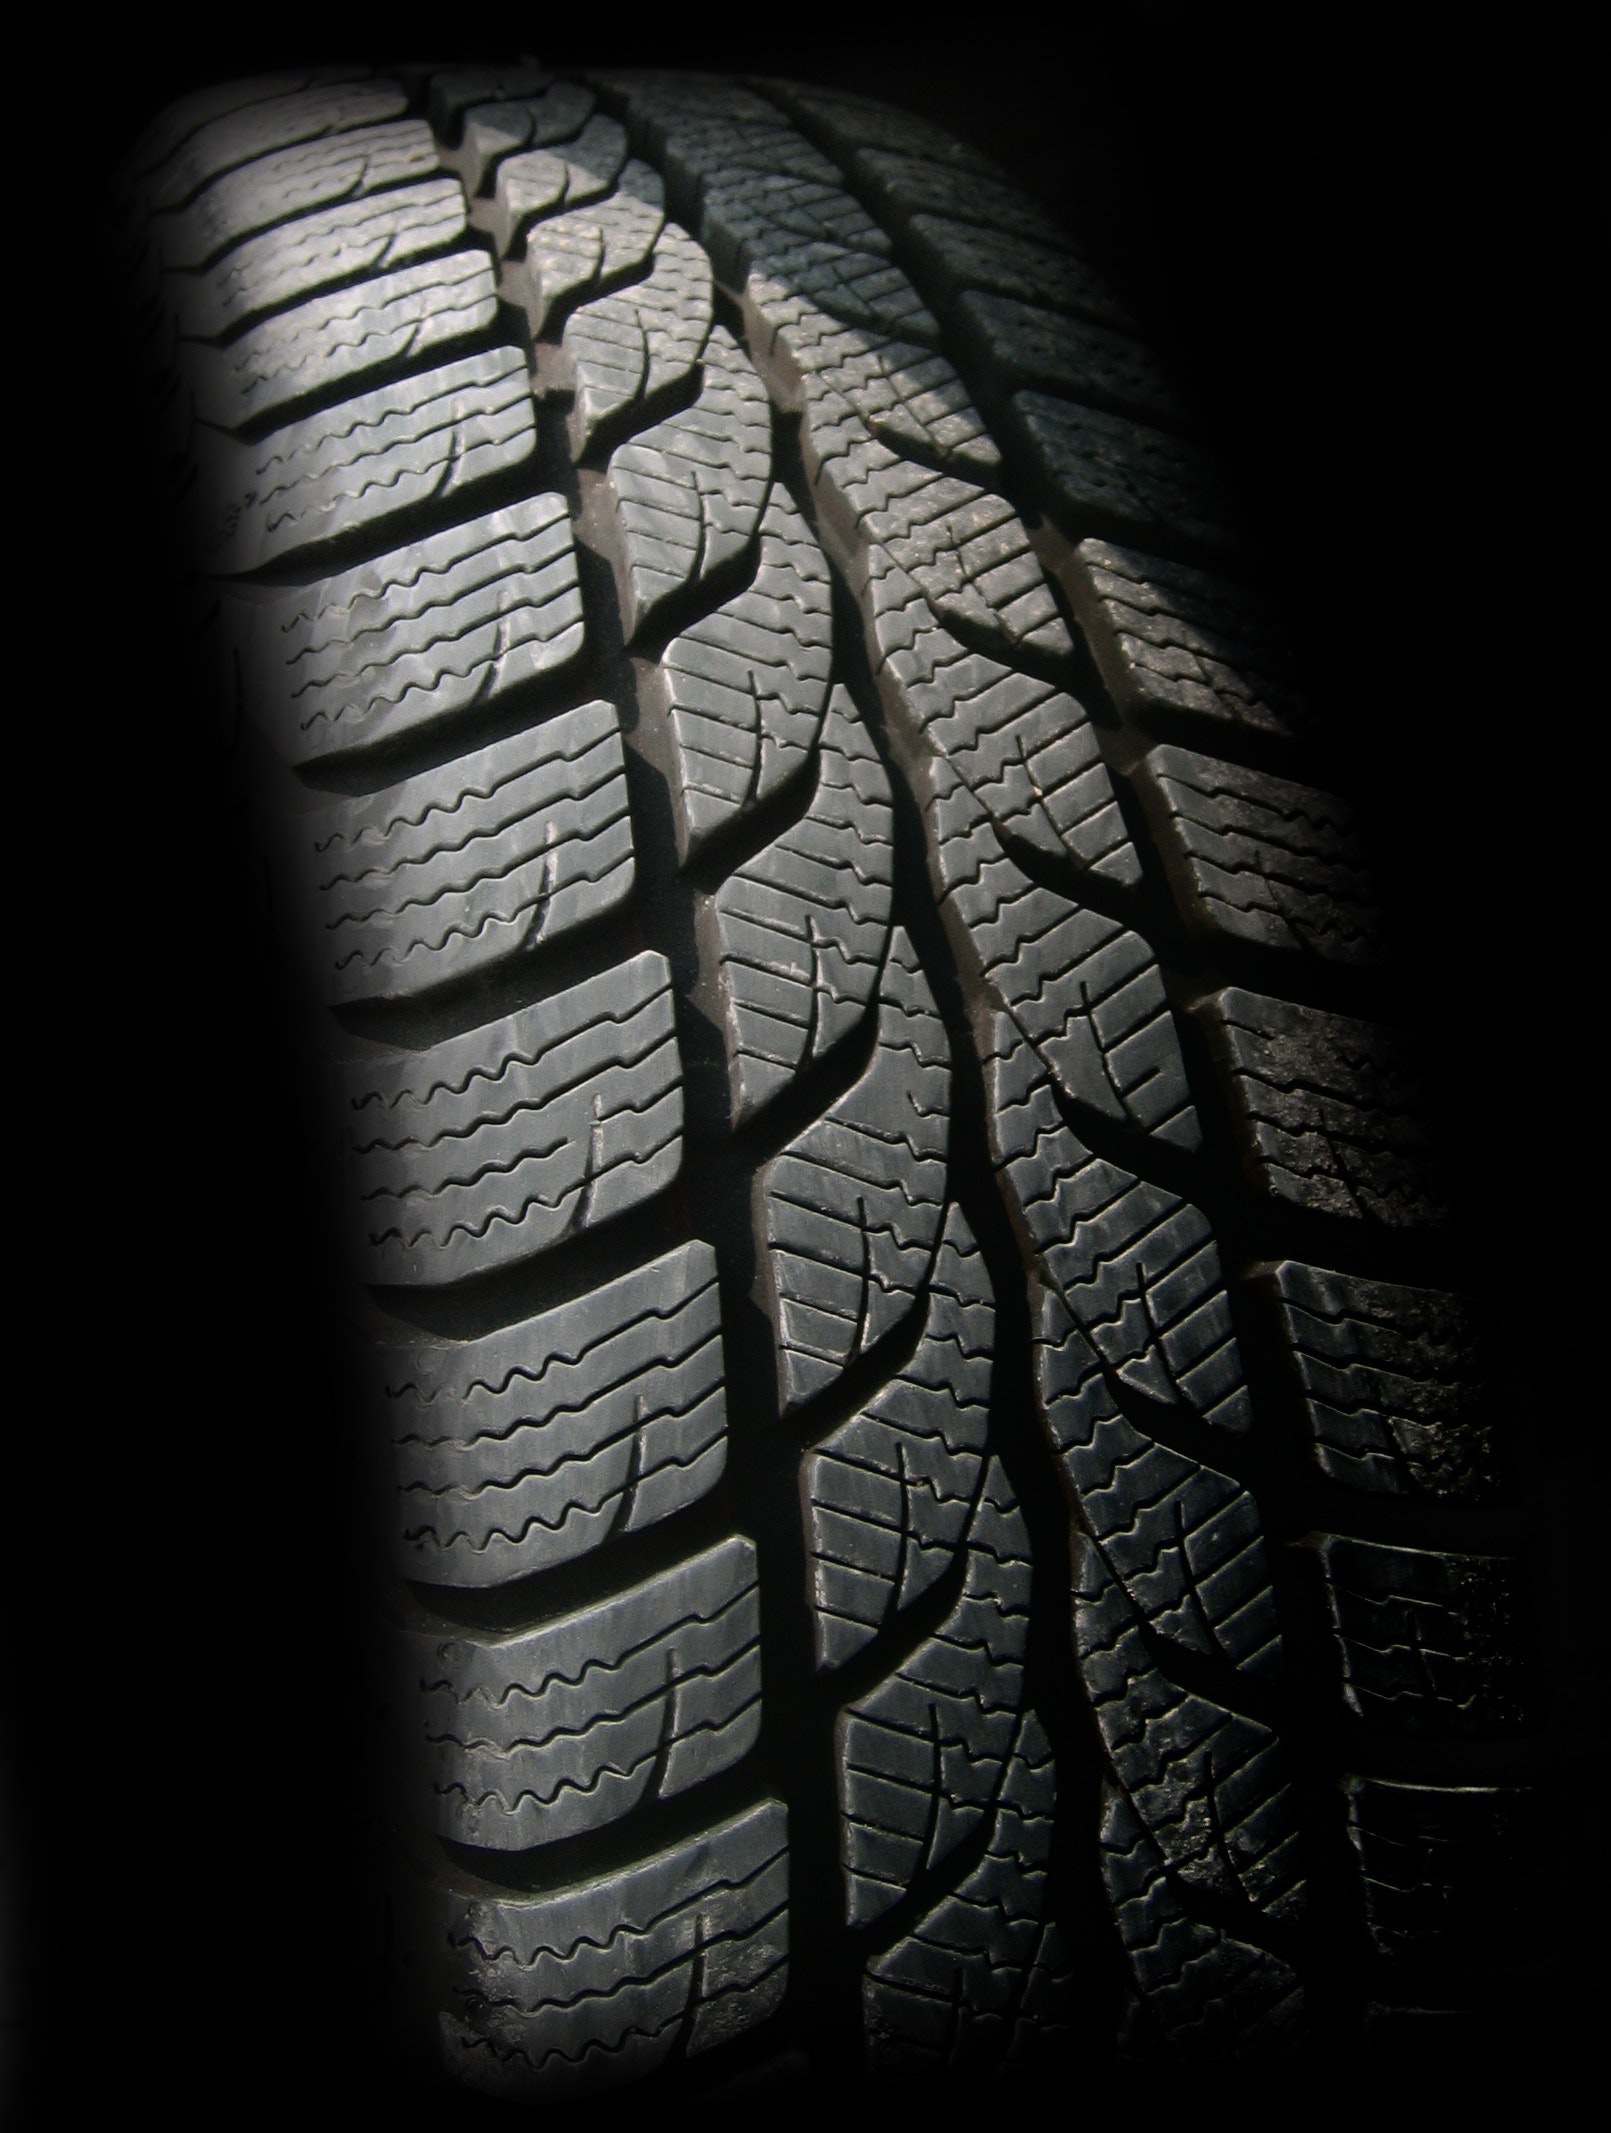 Jerry Saunders Fairmount Tire Los Angeles Celebrate 60 Years With